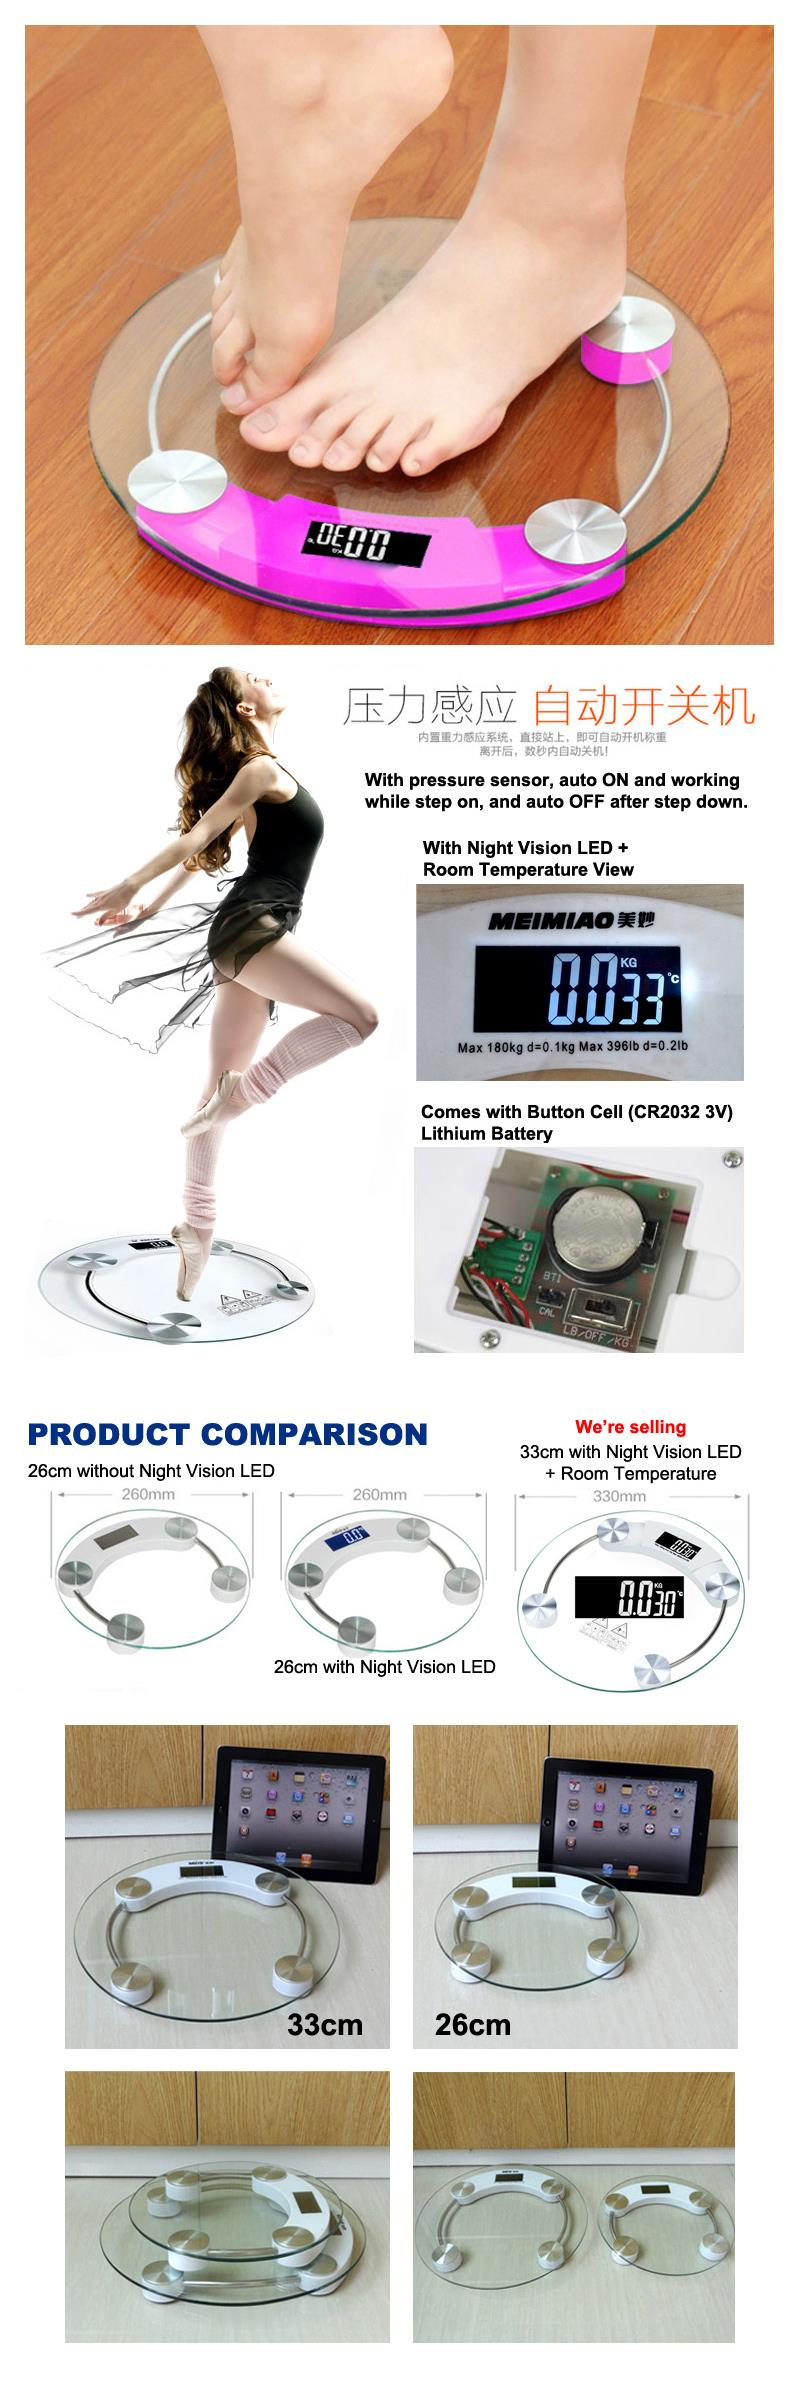 33cm Tempered Glass Body Weight Digital Weighing Scale w/ Night LED